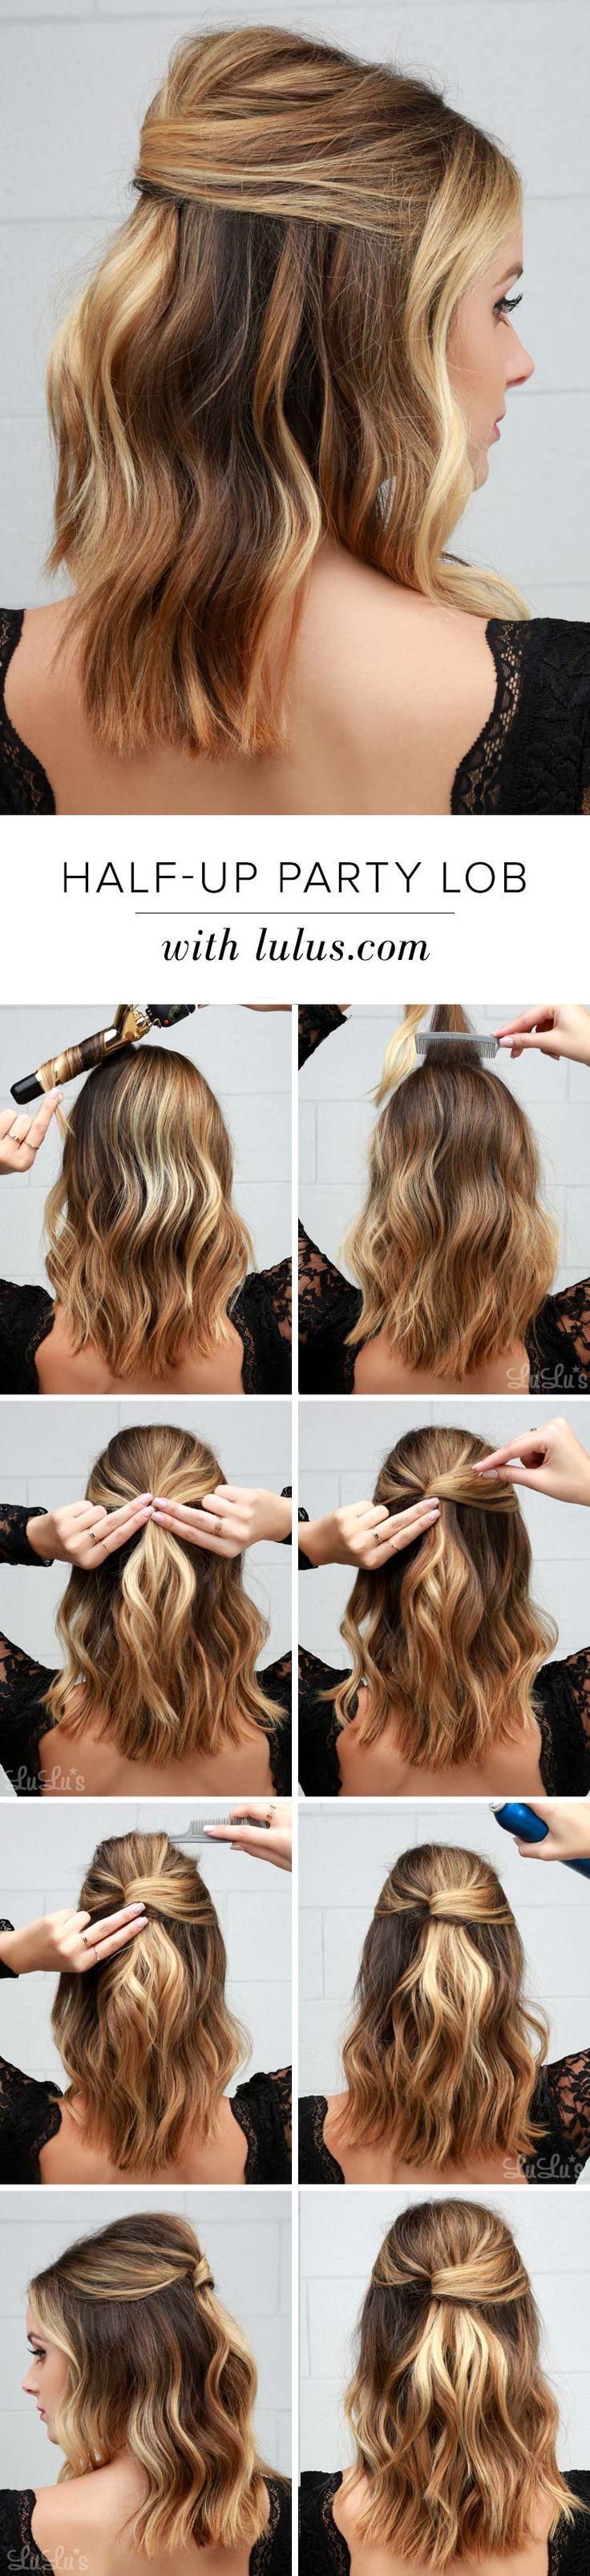 270 best Style Hair & Beauty images on Pinterest